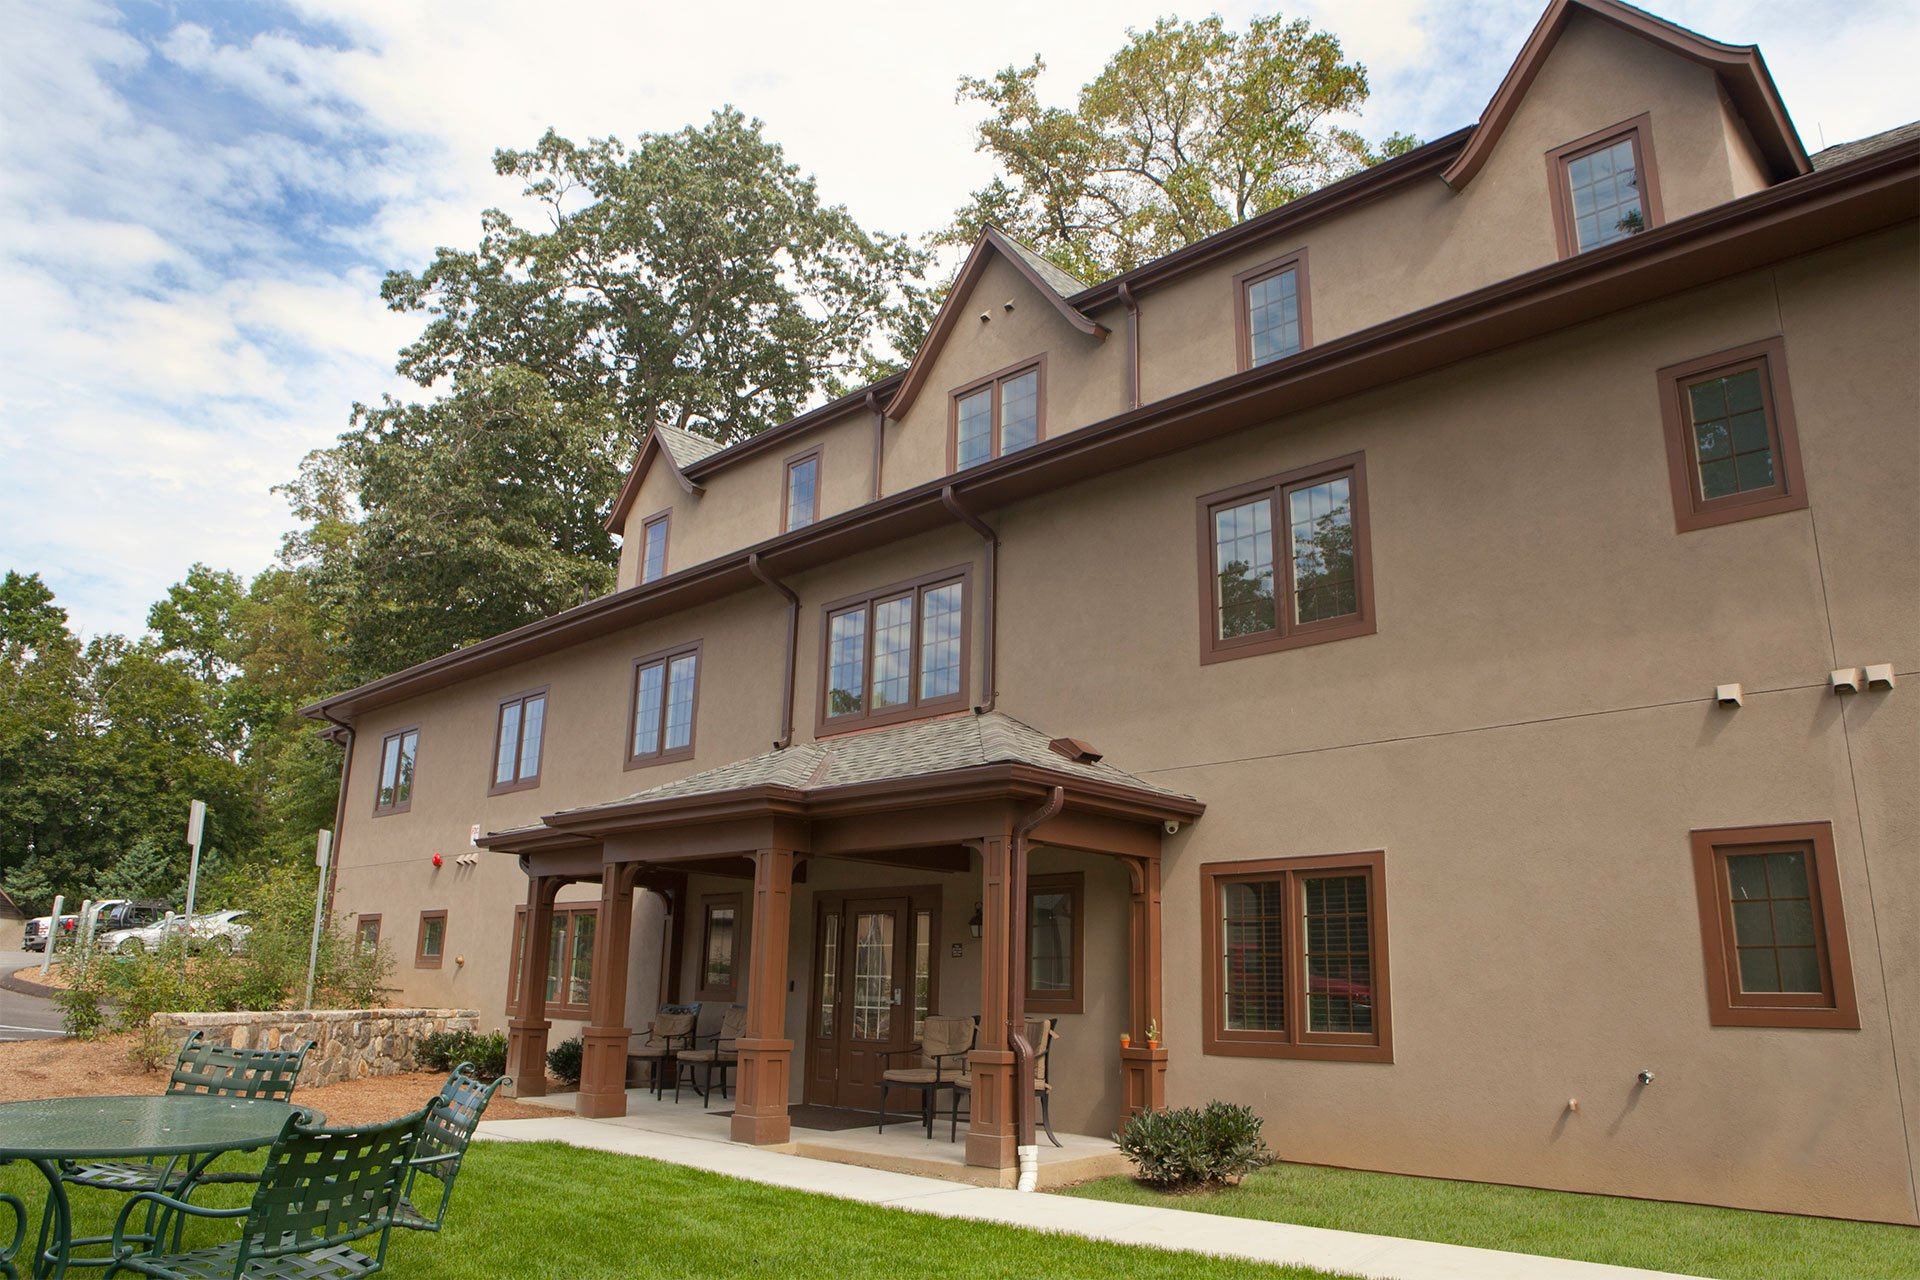 murphy-brothers-contracting-commercial-commercial-quaker-ridge-exterior-05